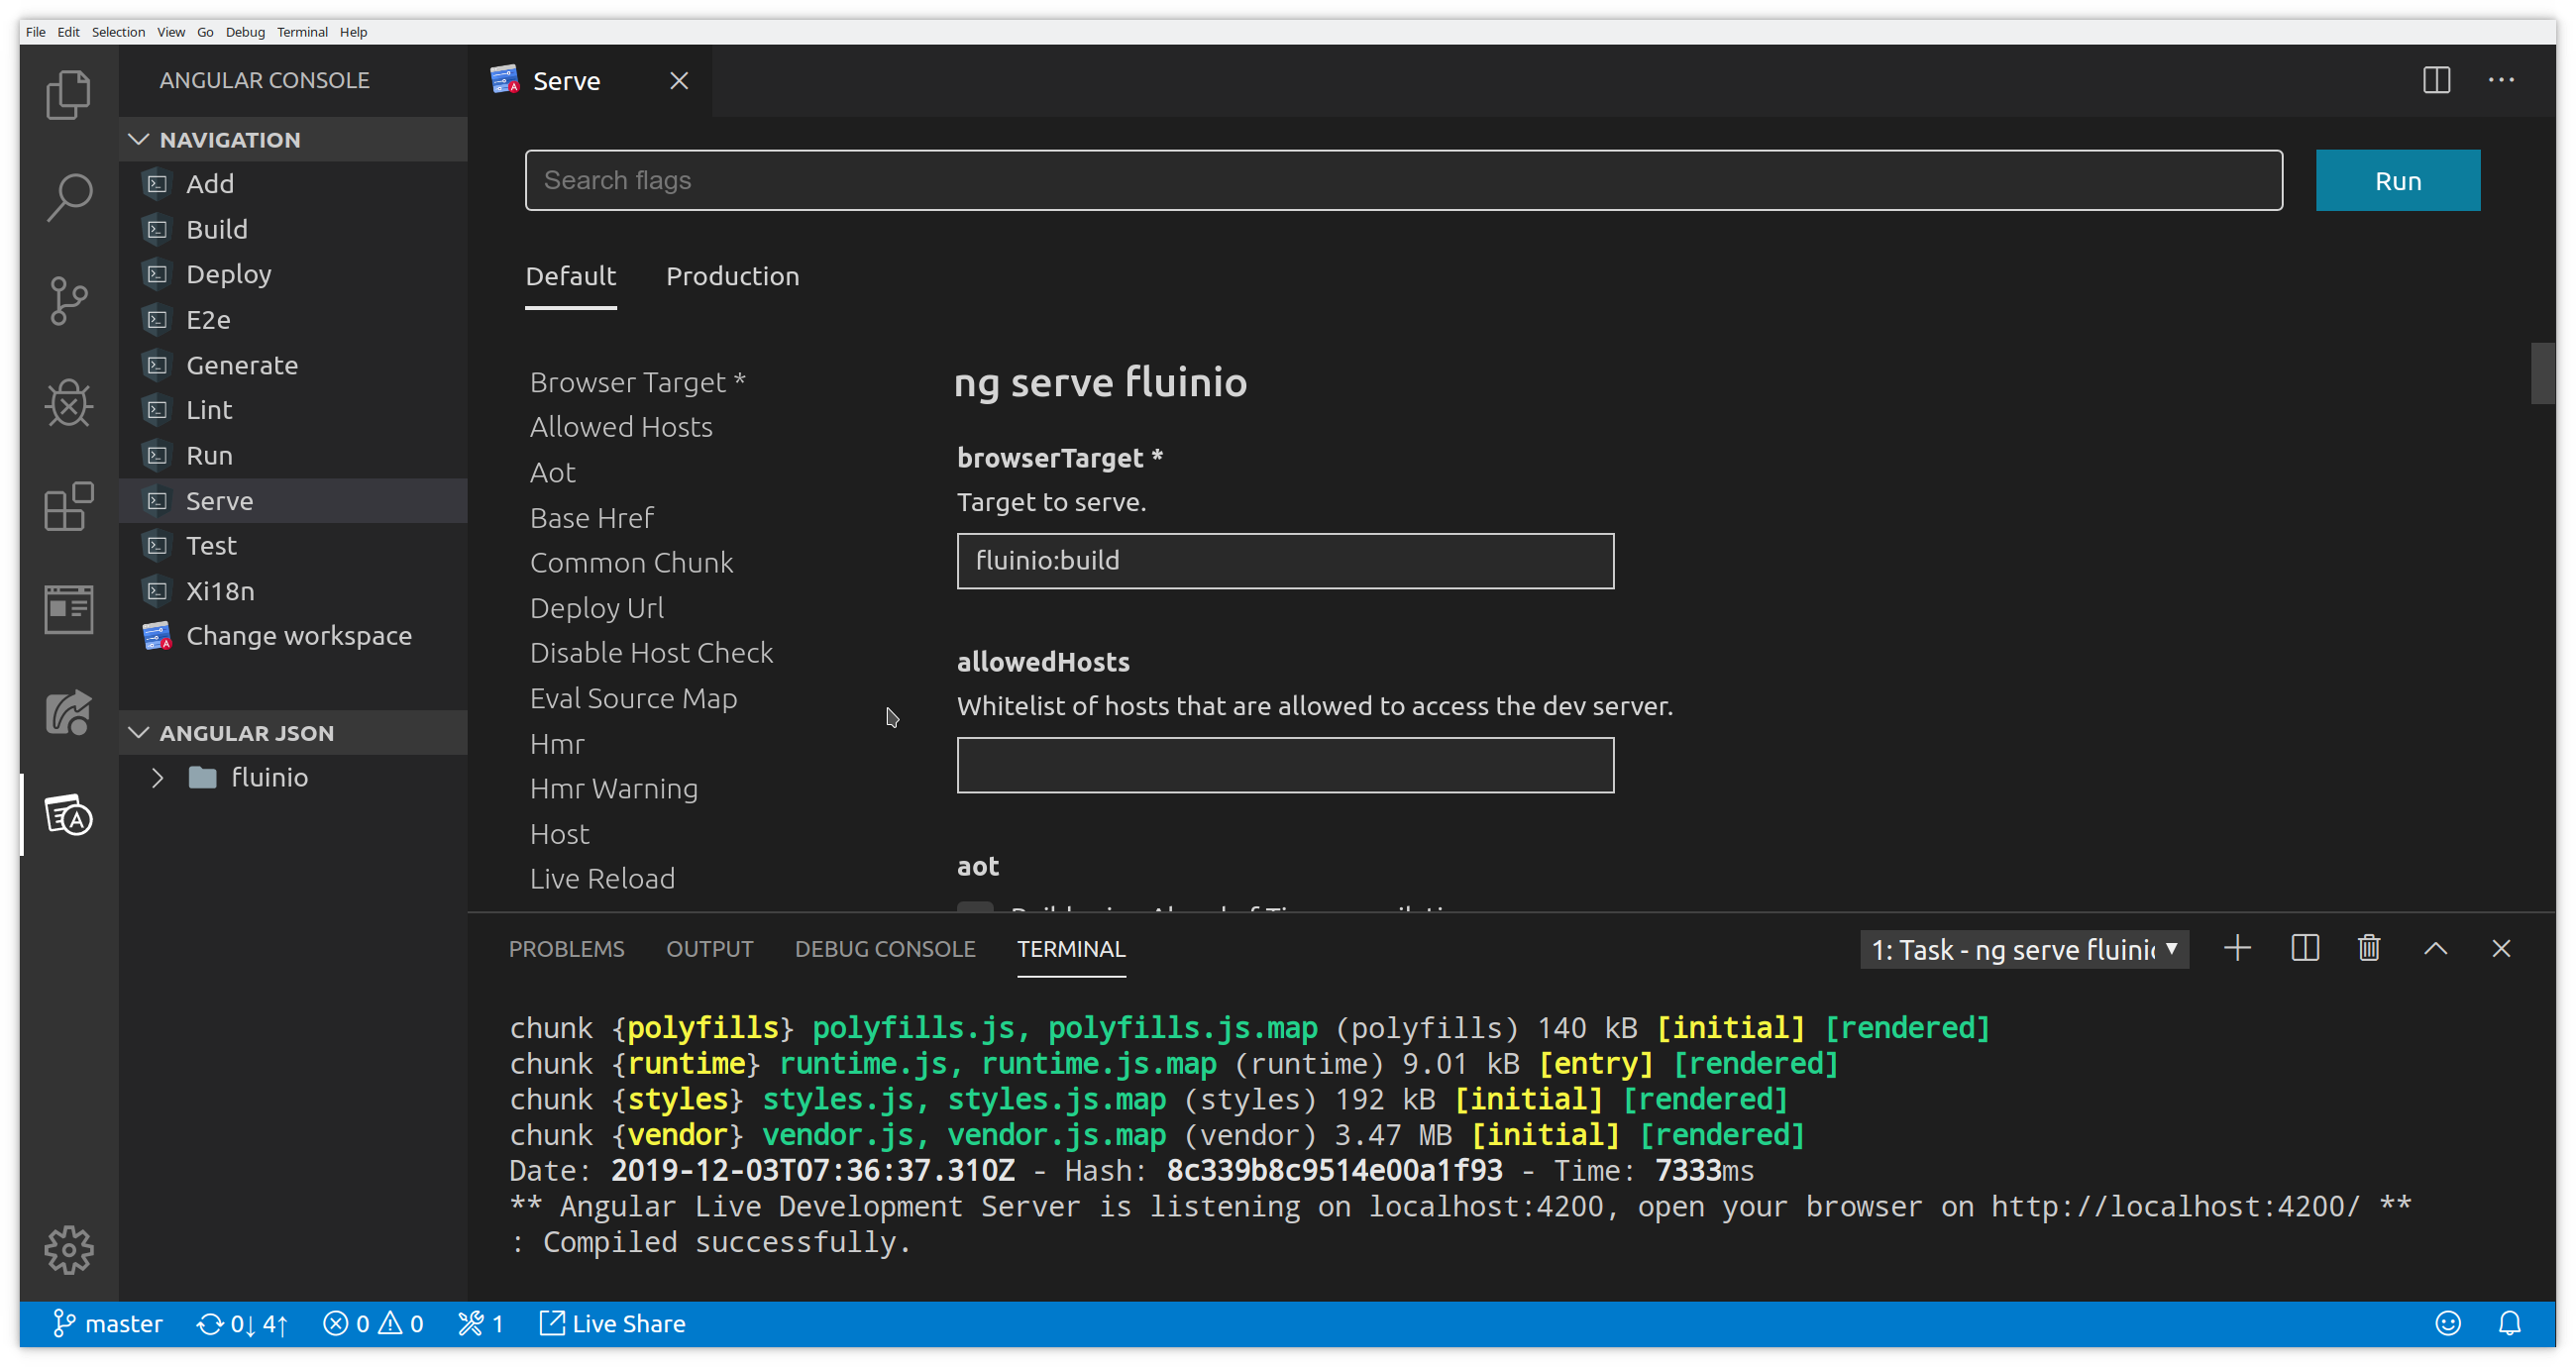 Angular Console in VS Code Screenshot